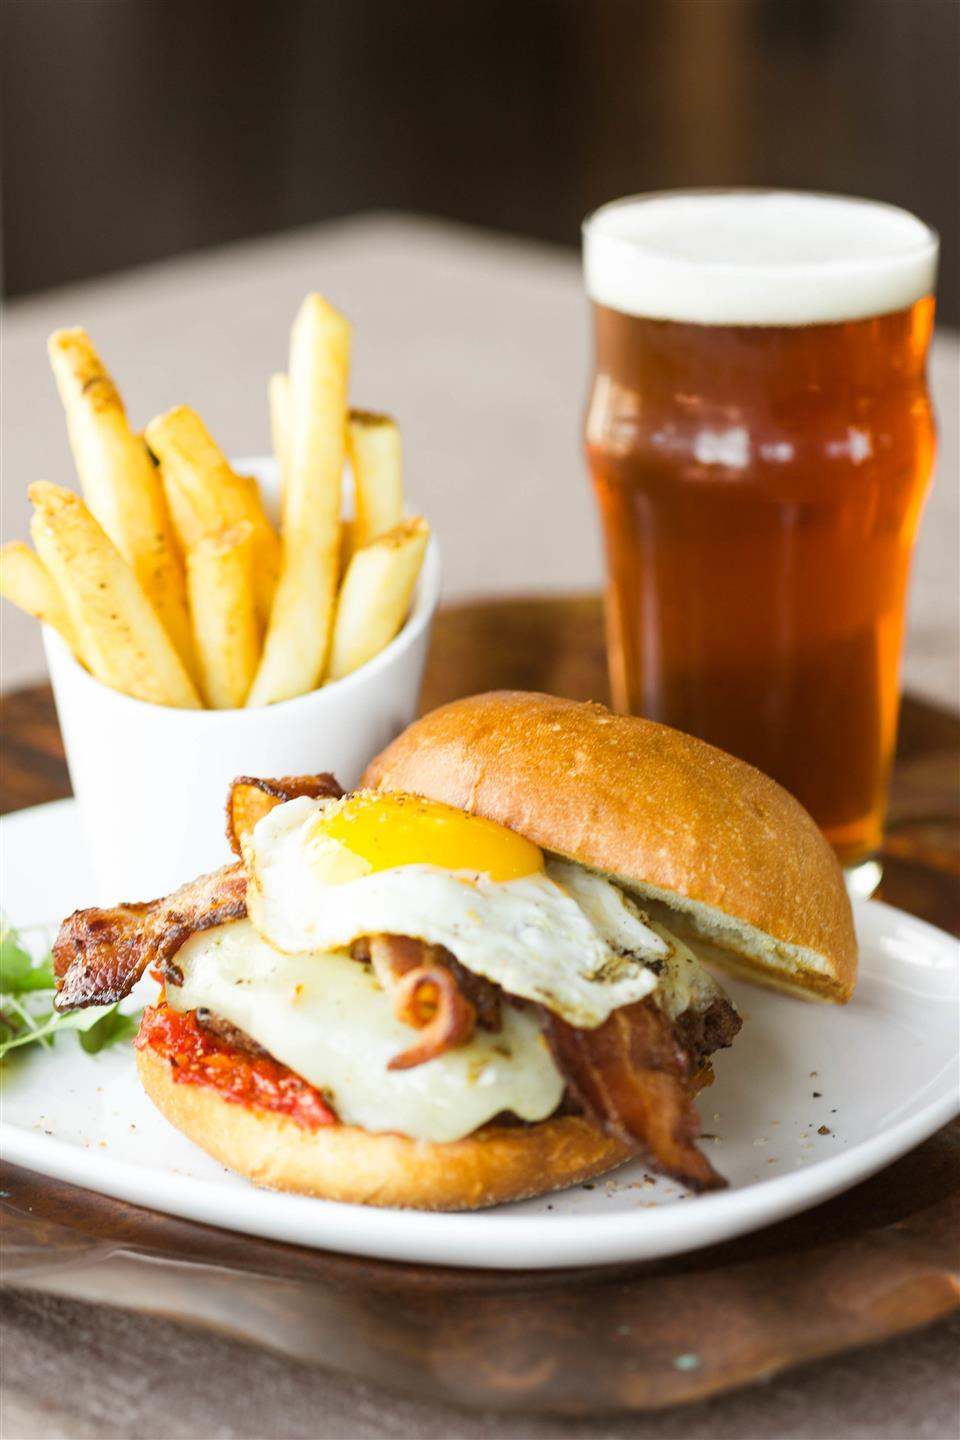 sandwich topped with an egg and bacon with fries and a glass of beer